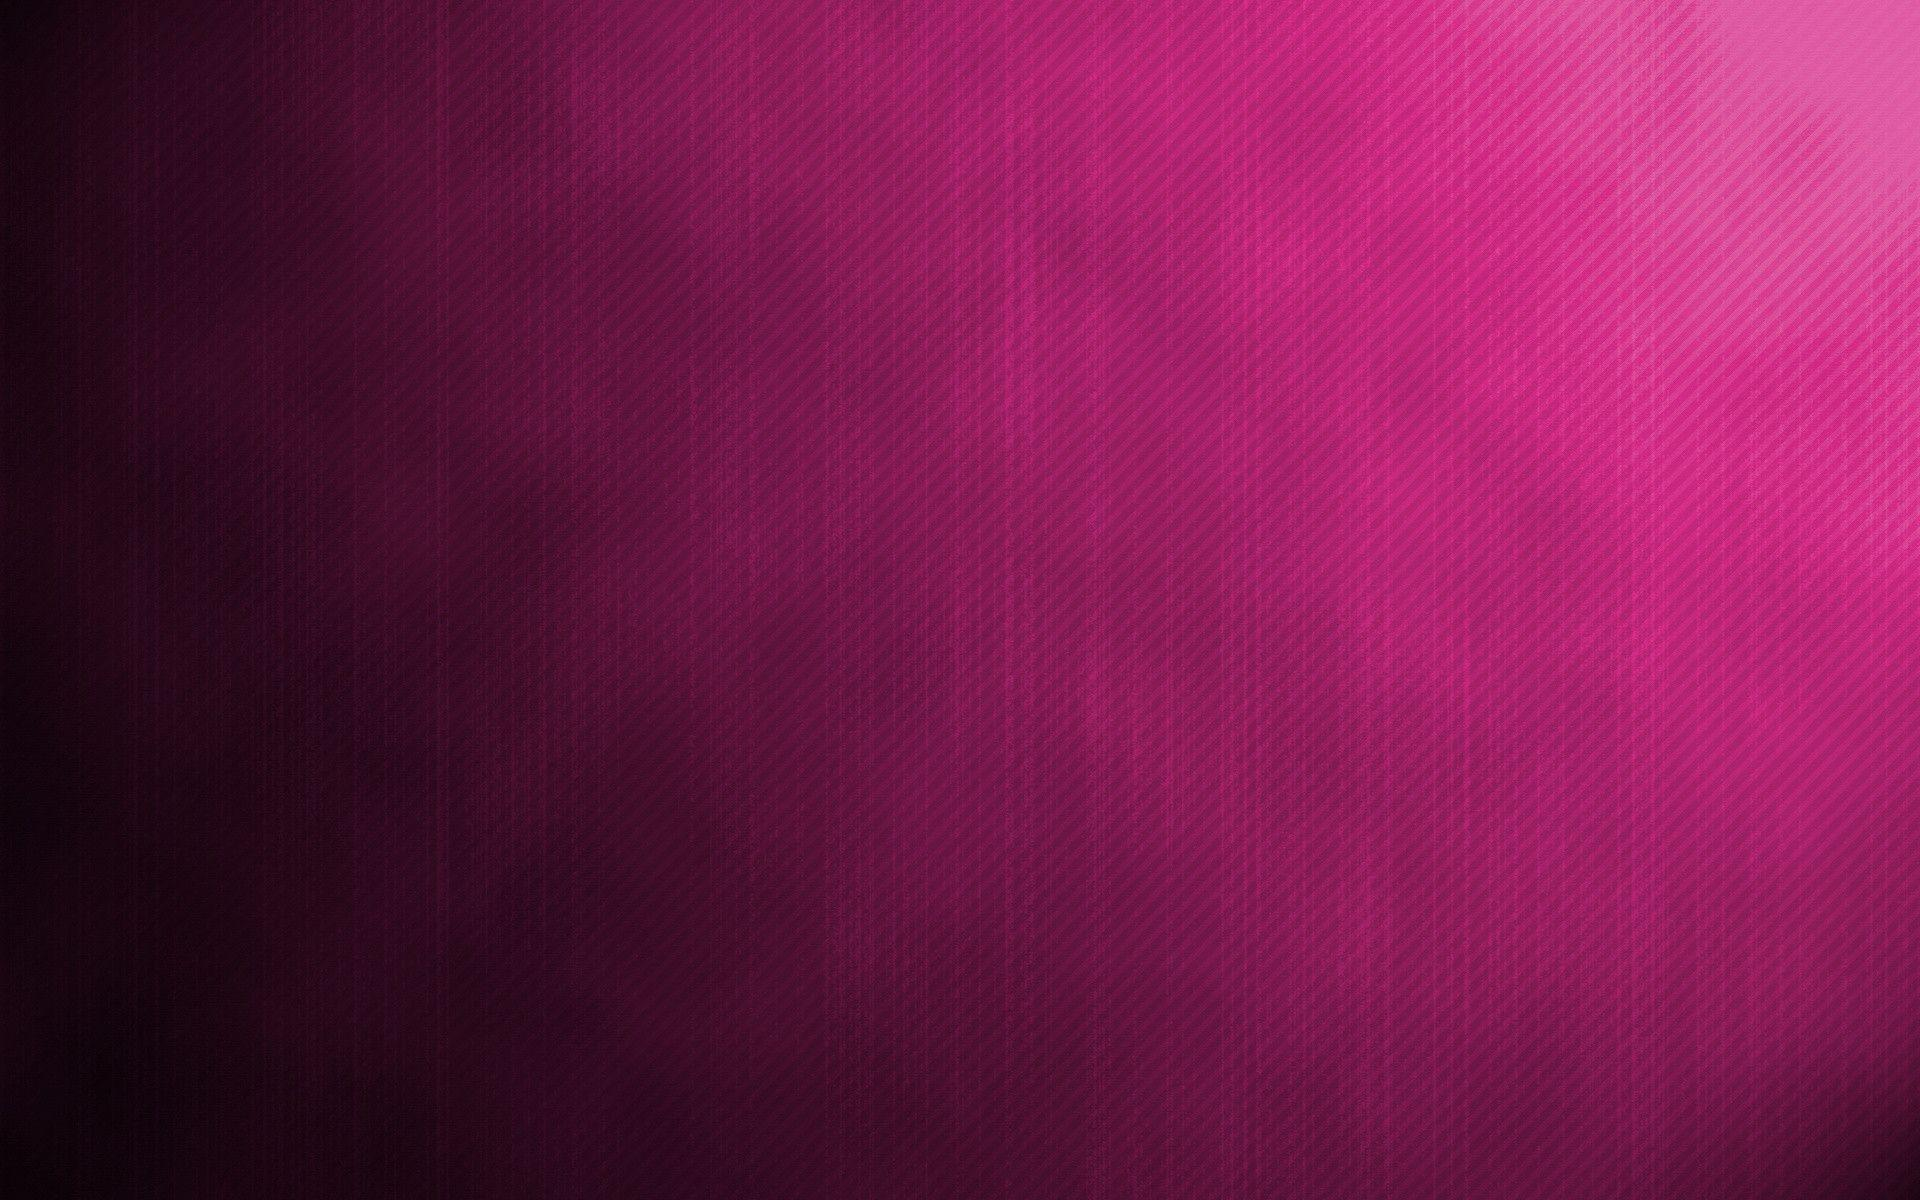 Hd Wallpaper App For Android Cool Pink Backgrounds Wallpaper Cave